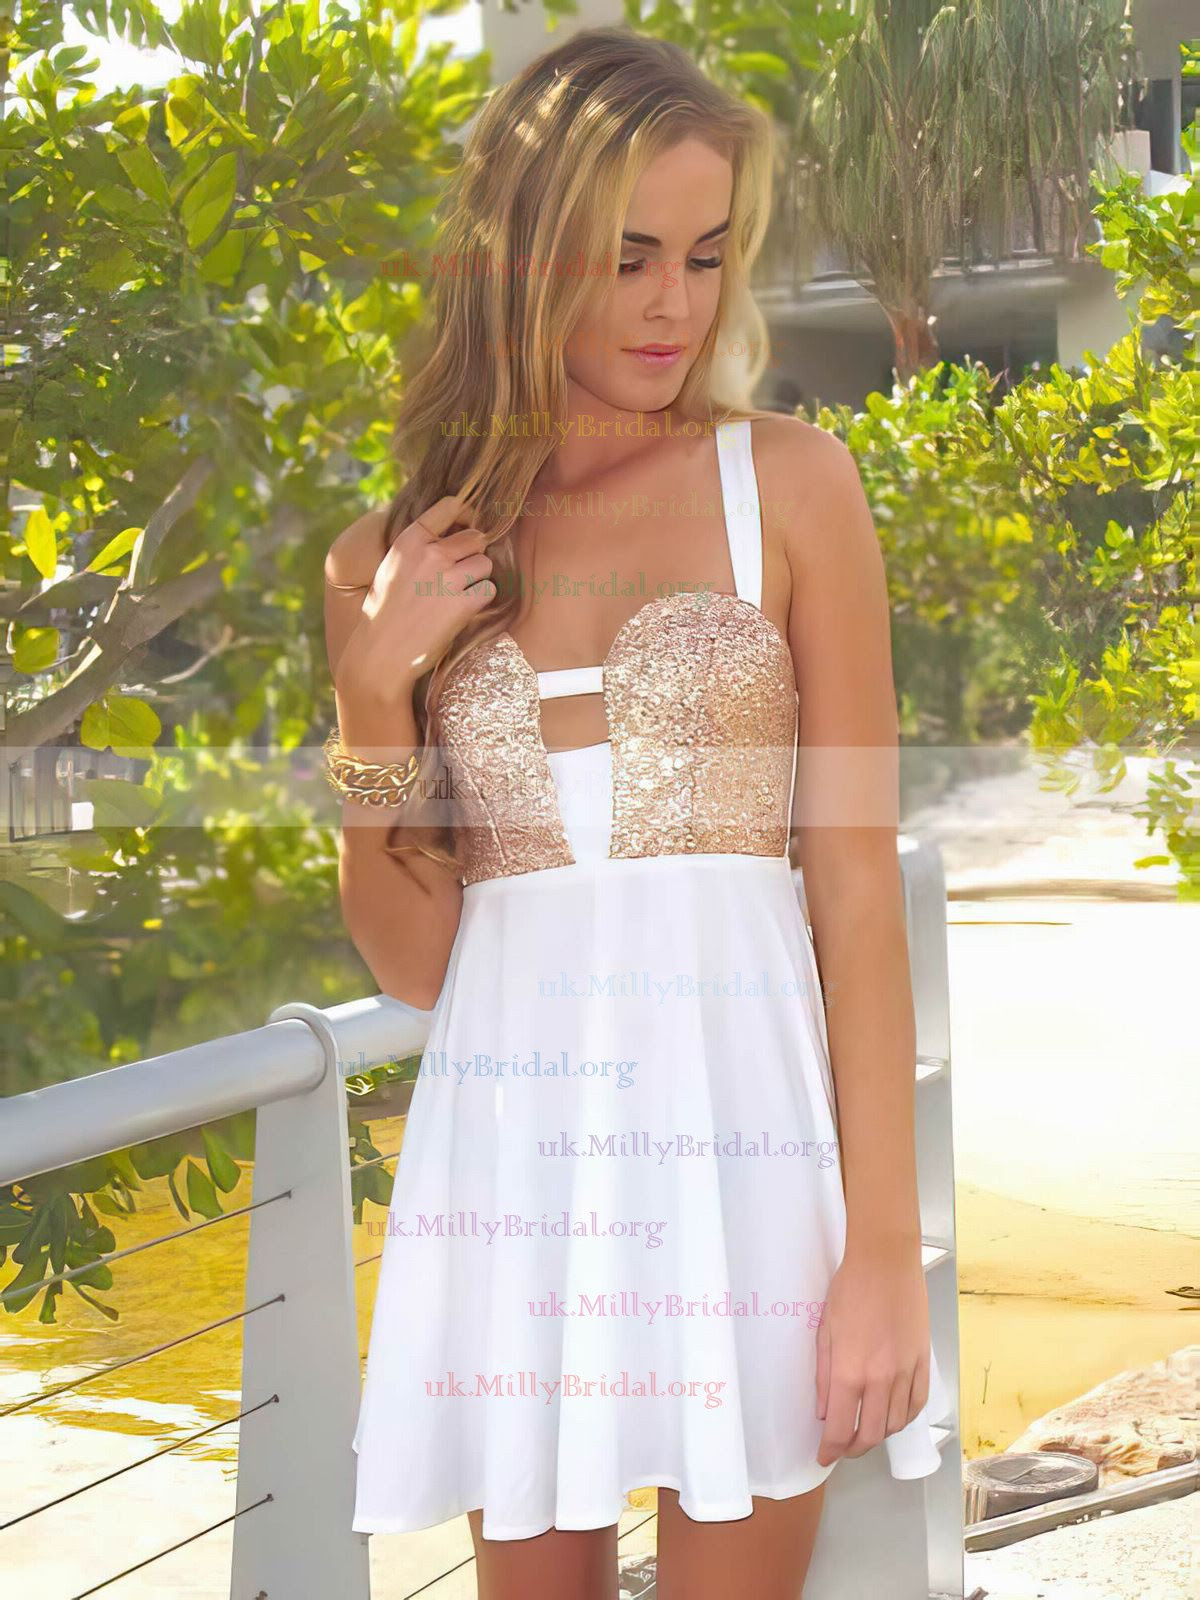 http://uk.millybridal.org/product/empire-white-sweetheart-chiffon-sequined-short-mini-casual-prom-dresses-02042066-1500.html?utm_source=minipost&utm_medium=1023&utm_campaign=blog